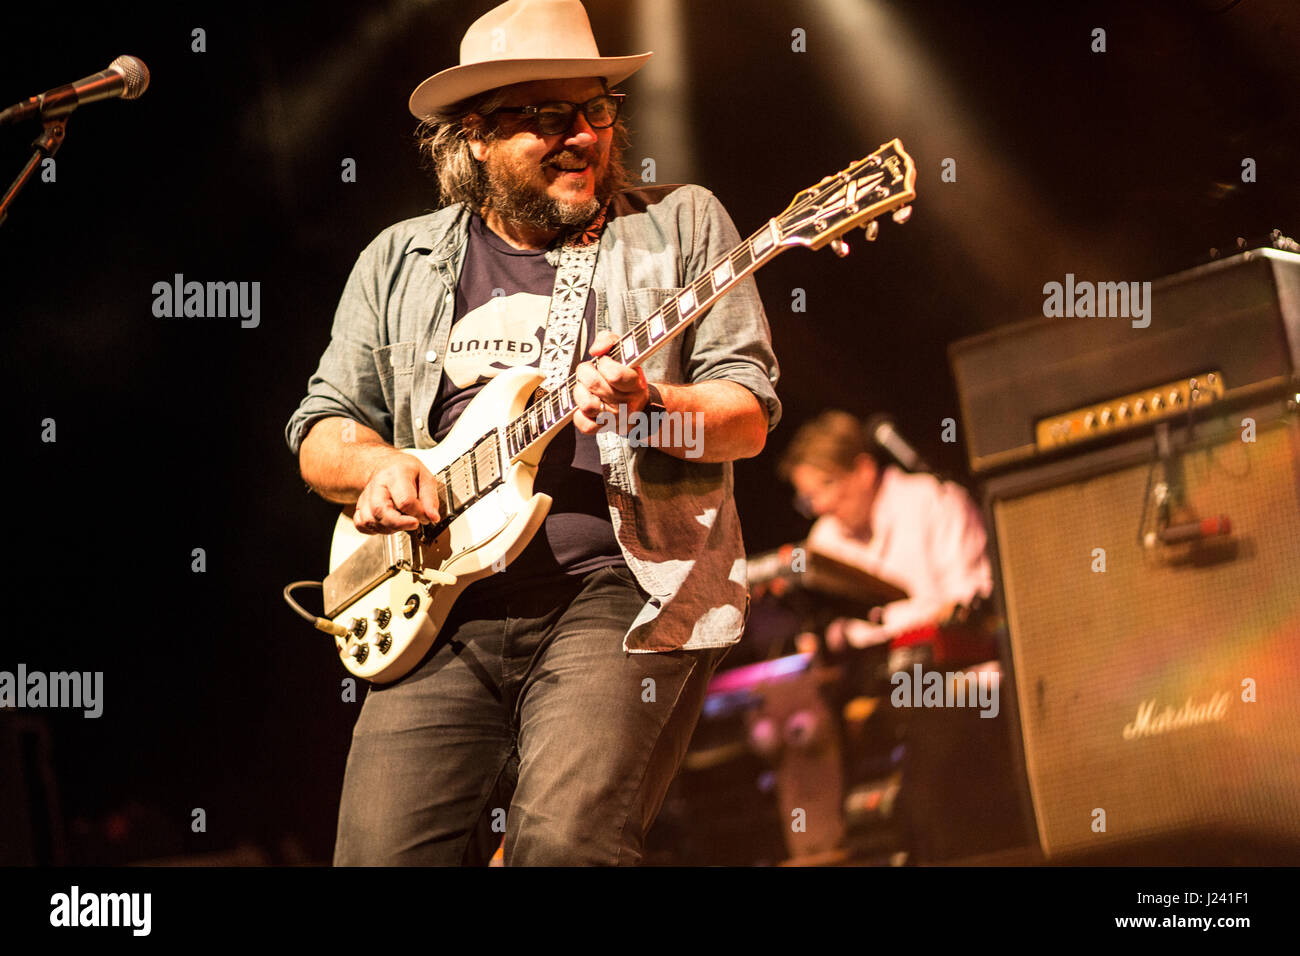 Wilco bringing a beautiful night of music - Stock Image